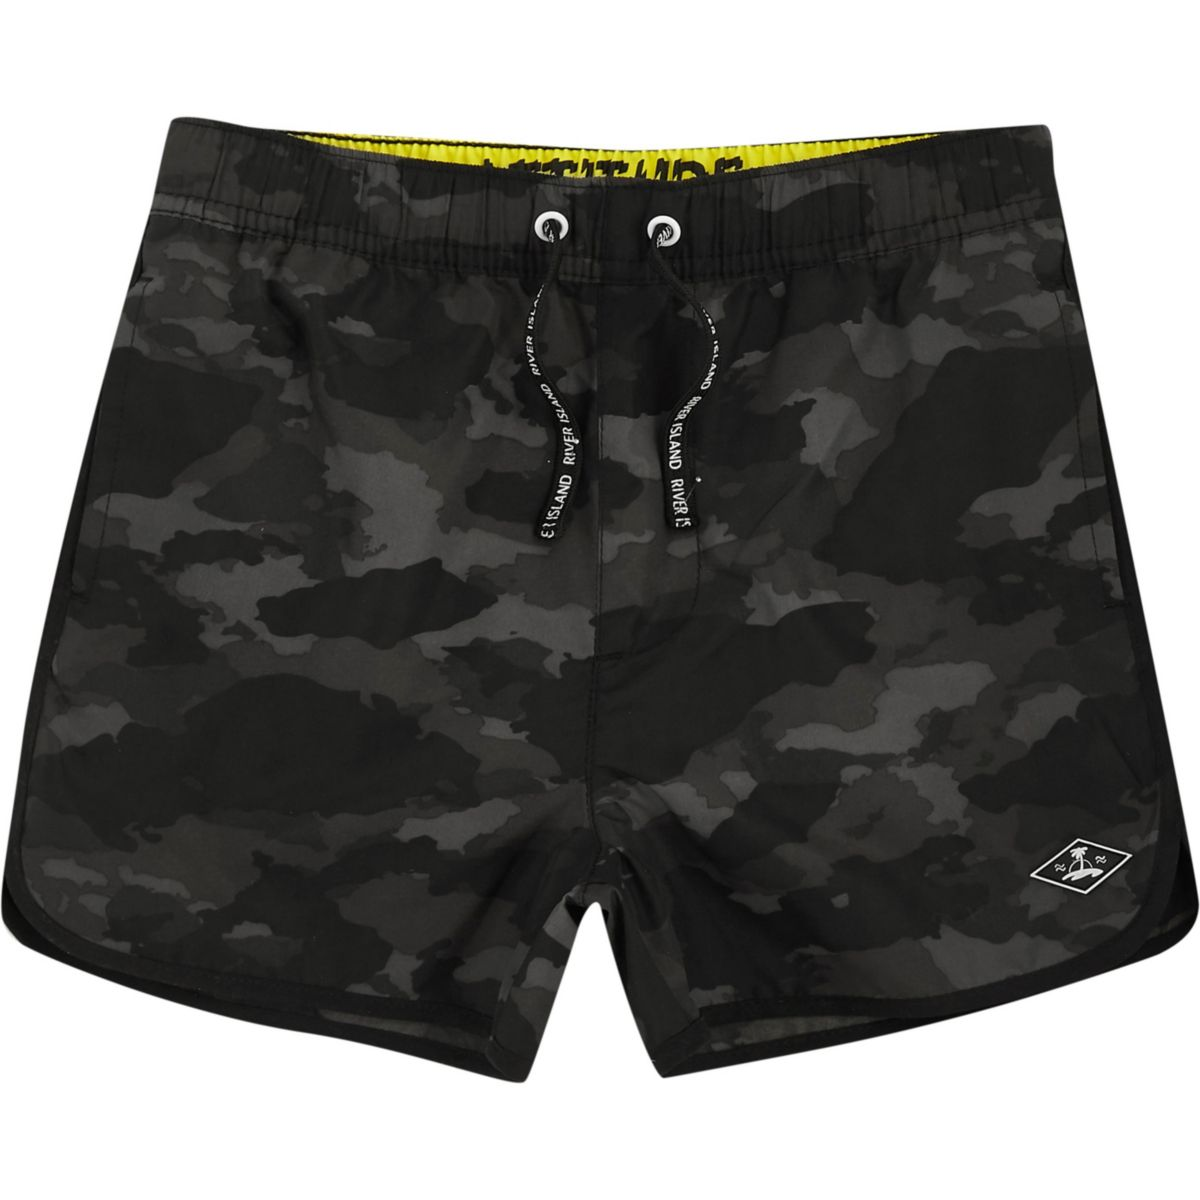 Boys khaki print swim shorts